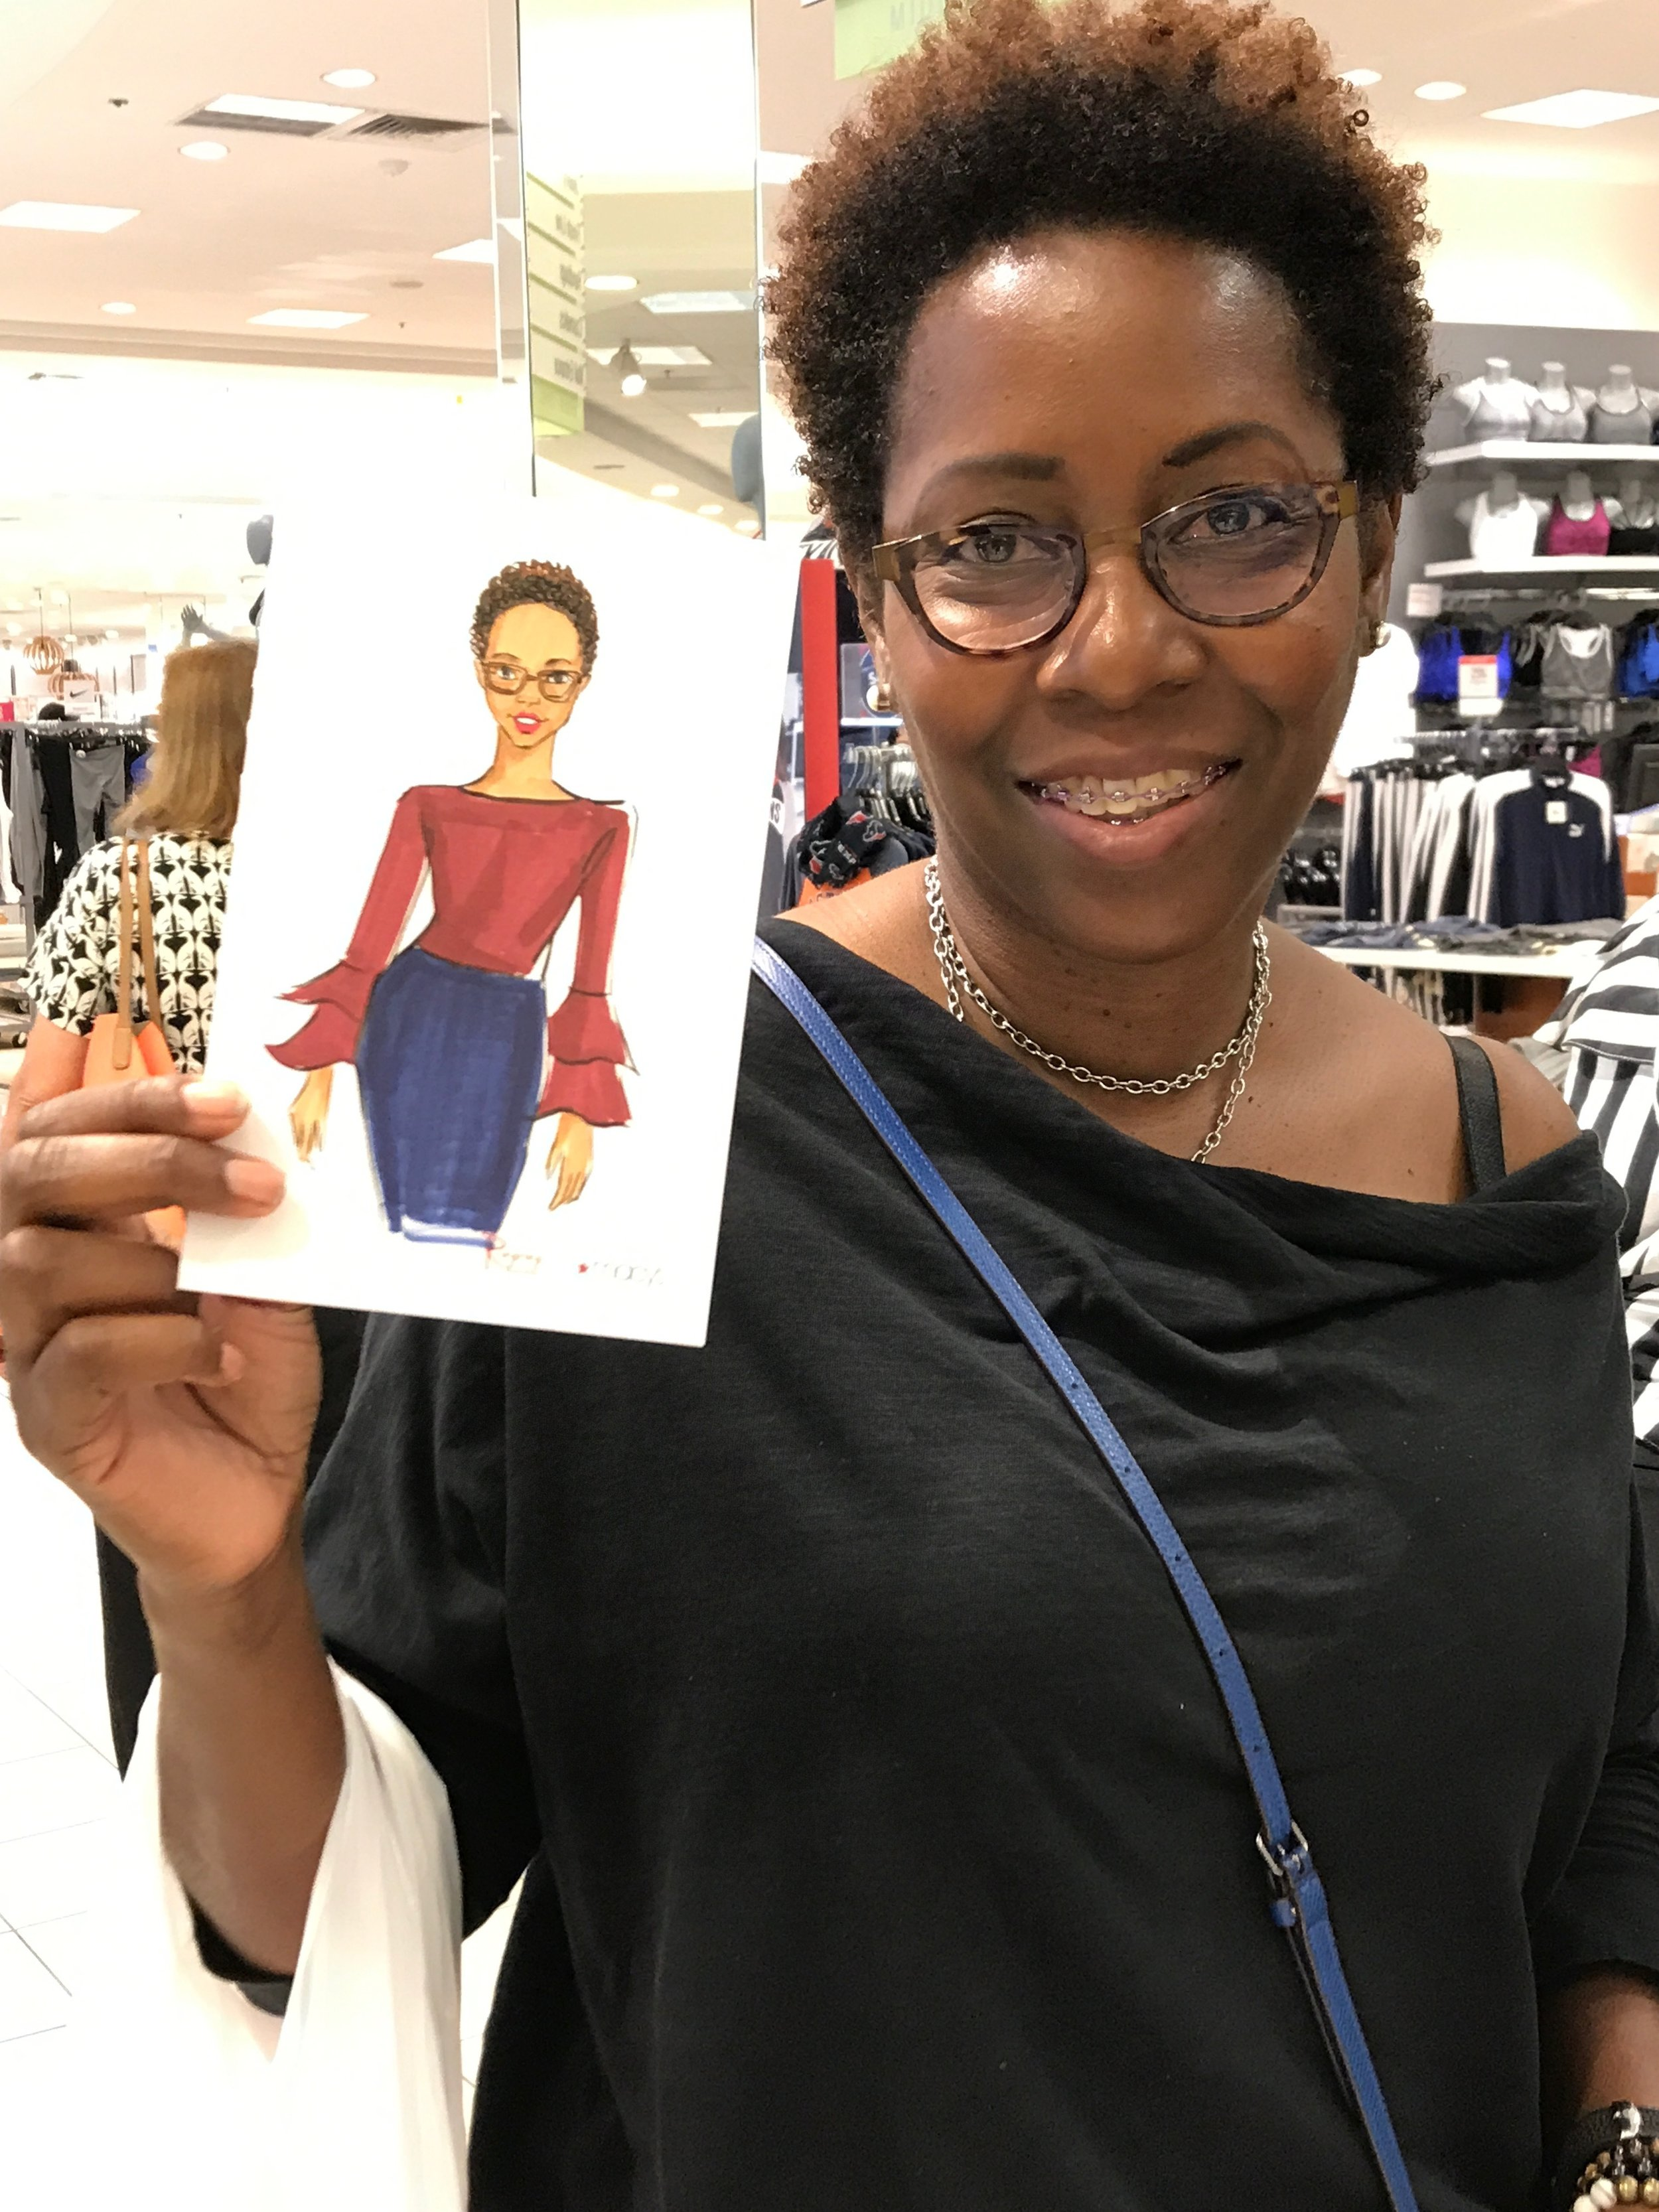 Rongrong DeVoe-Live fashion sketching customers at Macy's Houston Galleria.jpeg